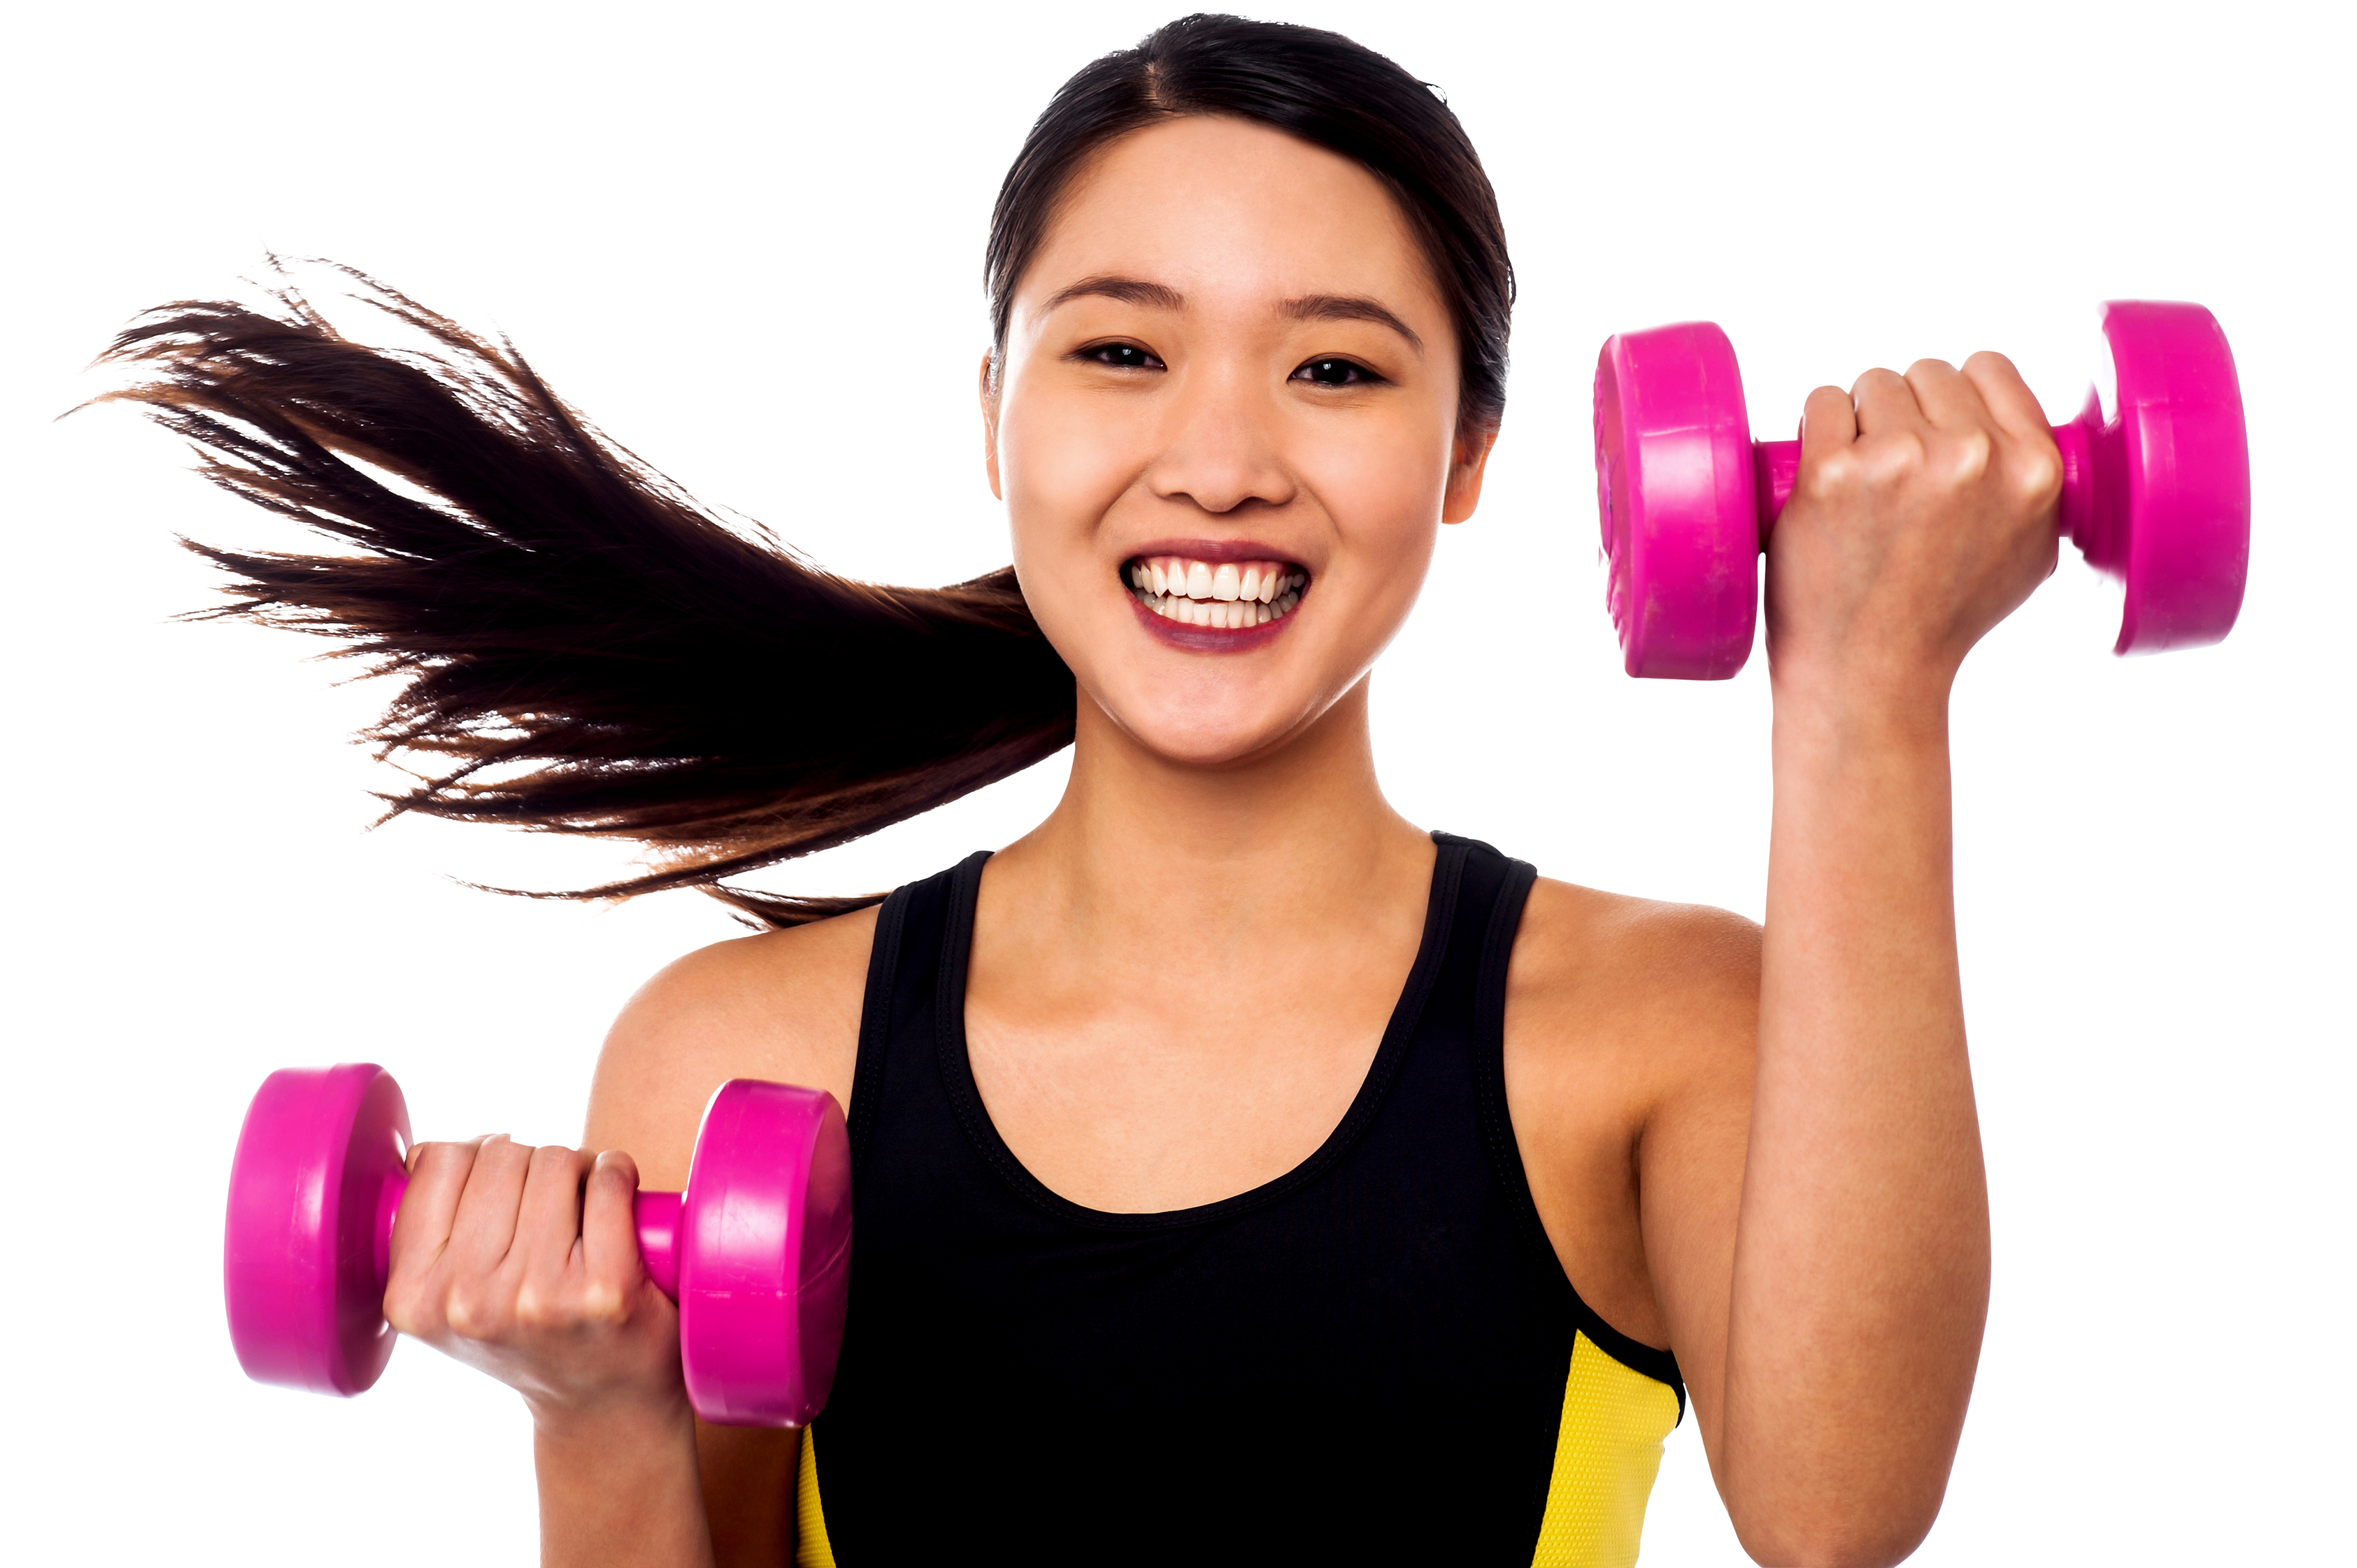 Download Women Exercising Png Image For Free